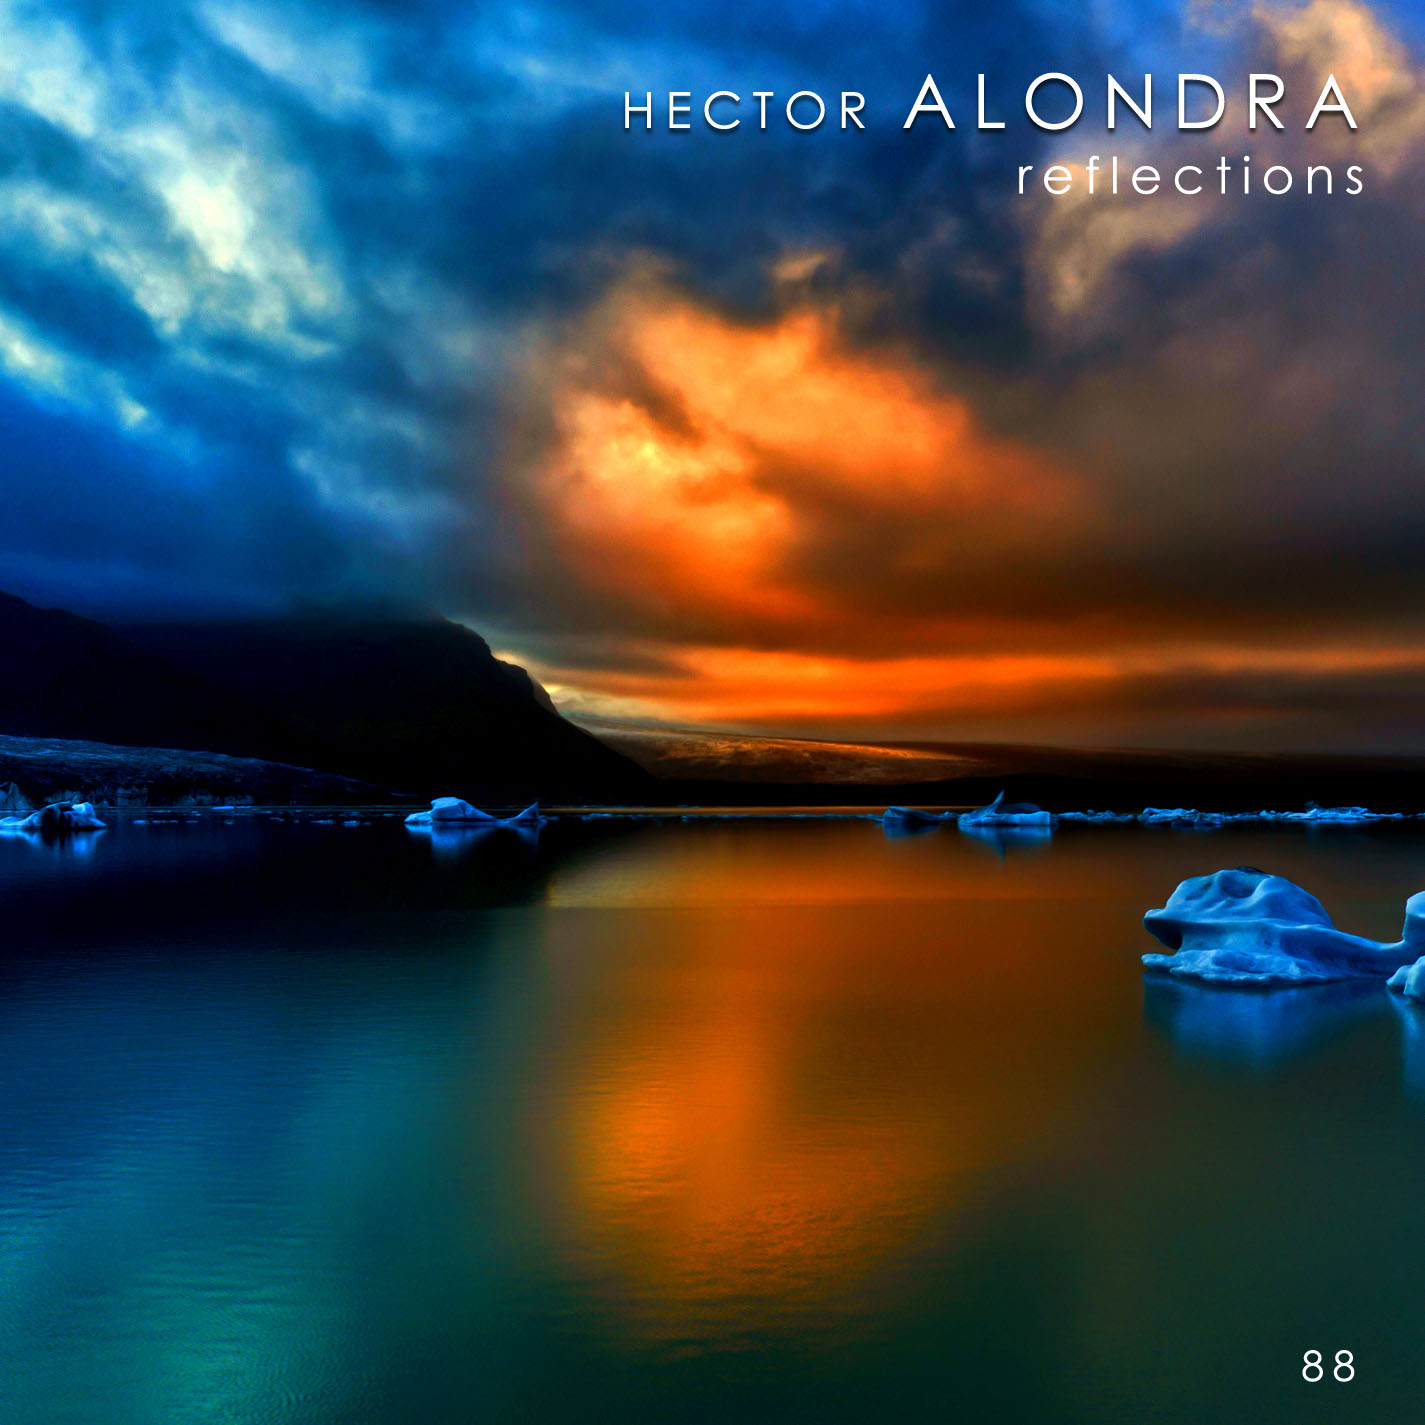 Session 88 - Reflections